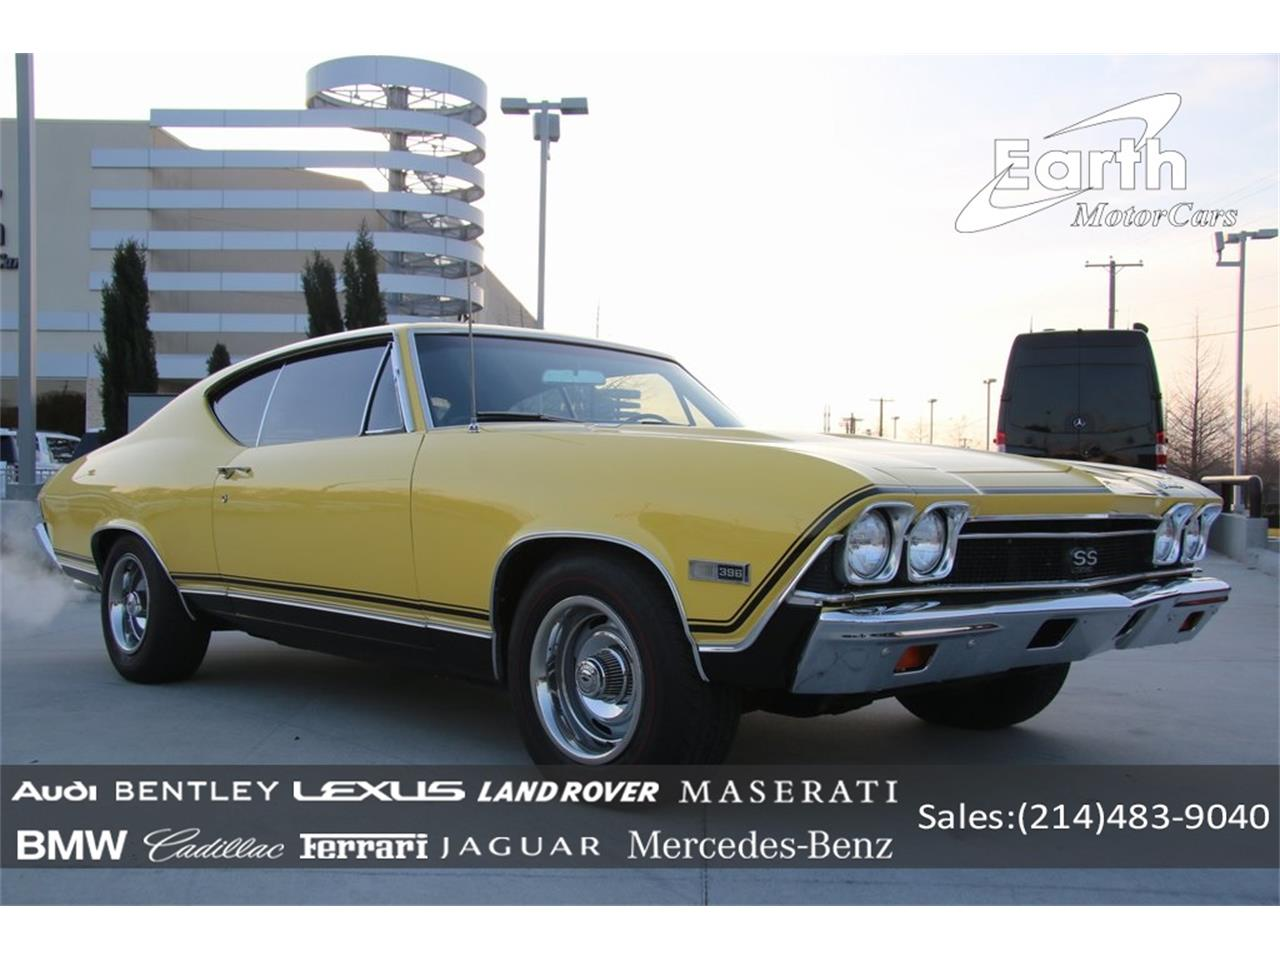 Large Picture of '68 Chevrolet Chevelle SS located in Texas Offered by Earth Motorcars - PO89